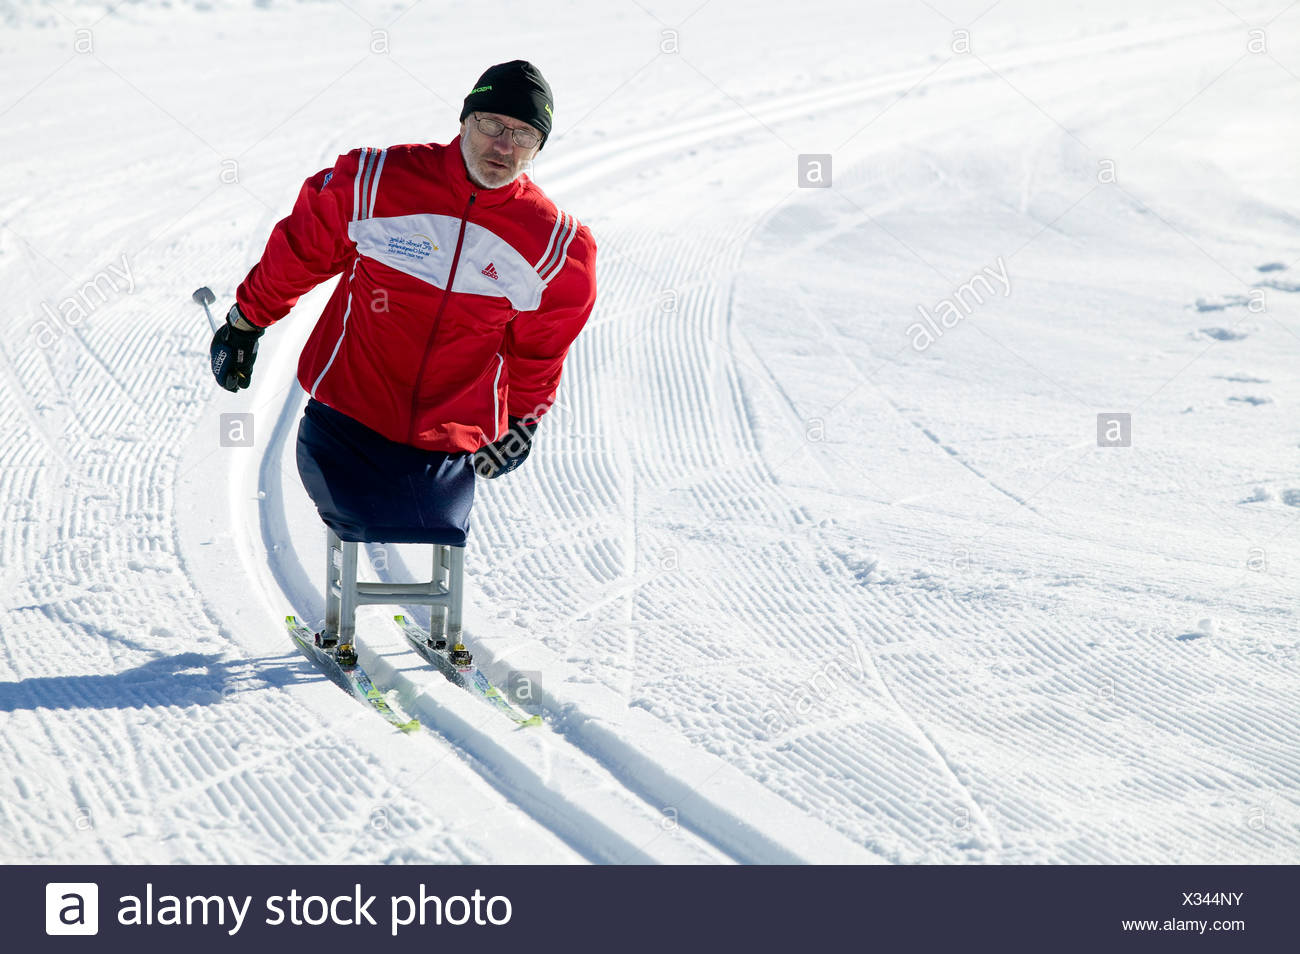 IPC Paralympic athlete warming up for upcoming cross country ski race.  Mt Washington, Vancouver Island, british Columbia, Canad - Stock Image